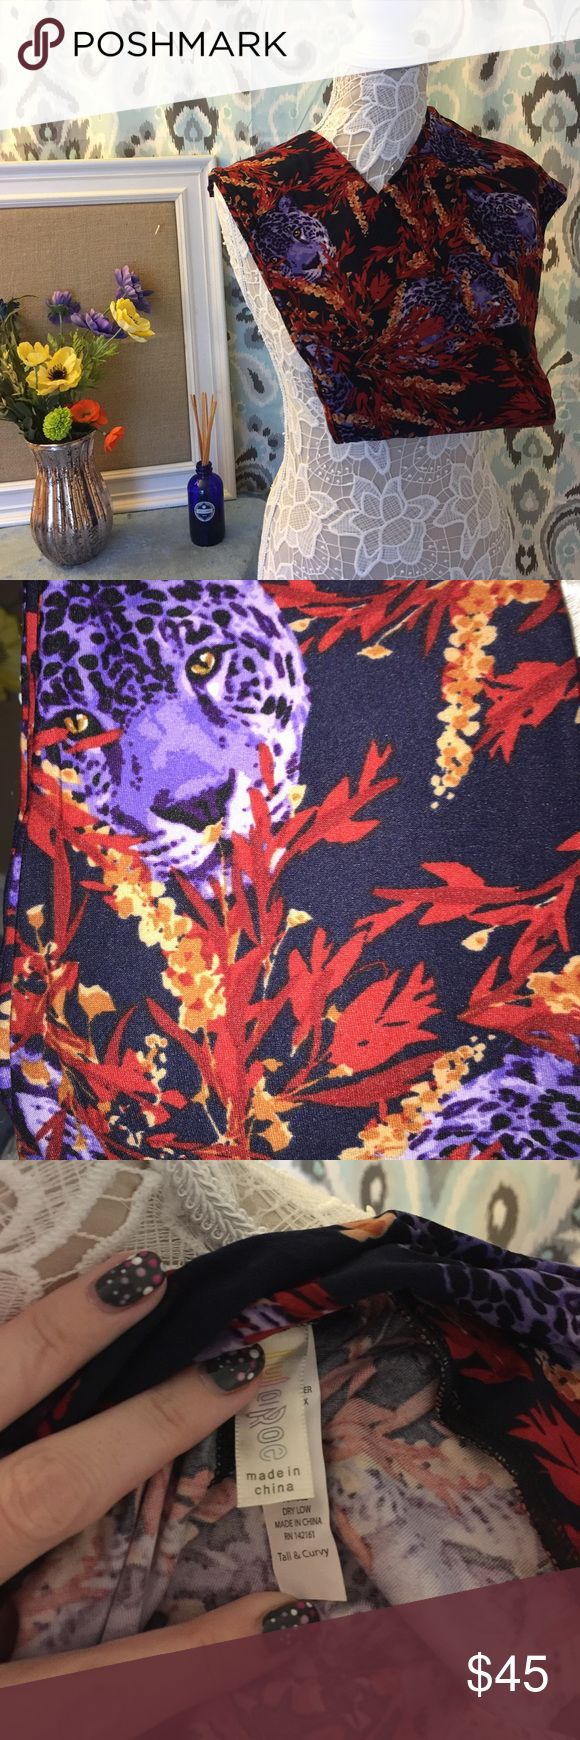 🆕 TC leopard print leggings Beautiful leopard print leggings in TC tall and curvy fits sizes 12-22. Buttery soft. Comes from smoke and cat free home. Never worn or tried on. Bundle and save LuLaRoe Pants Leggings